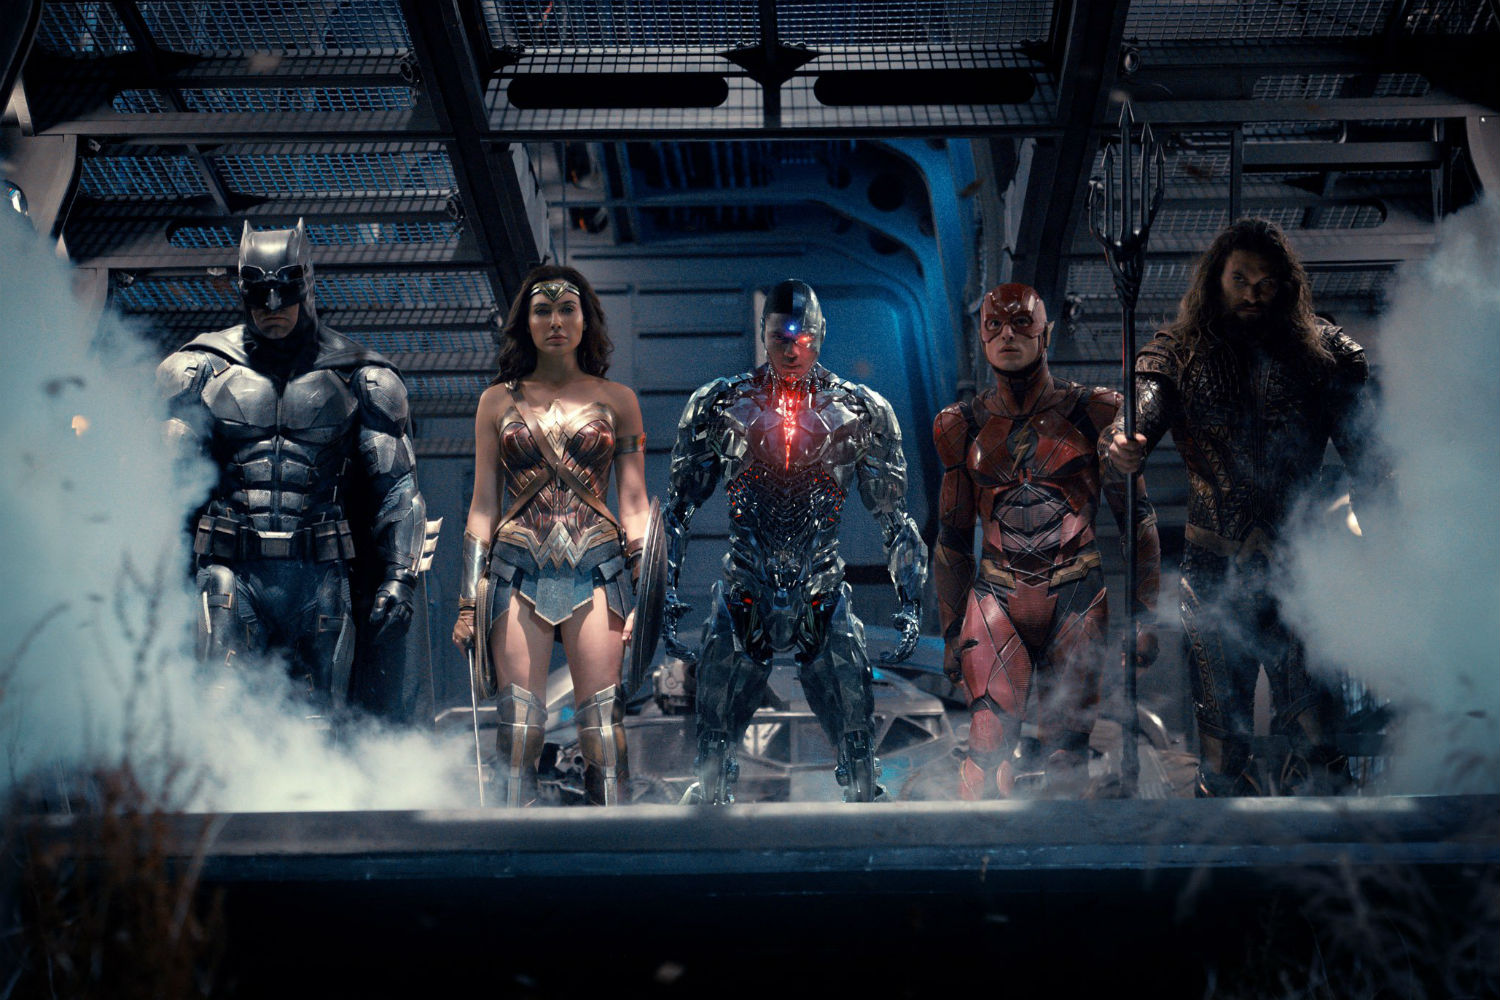 New Justice League Image Released